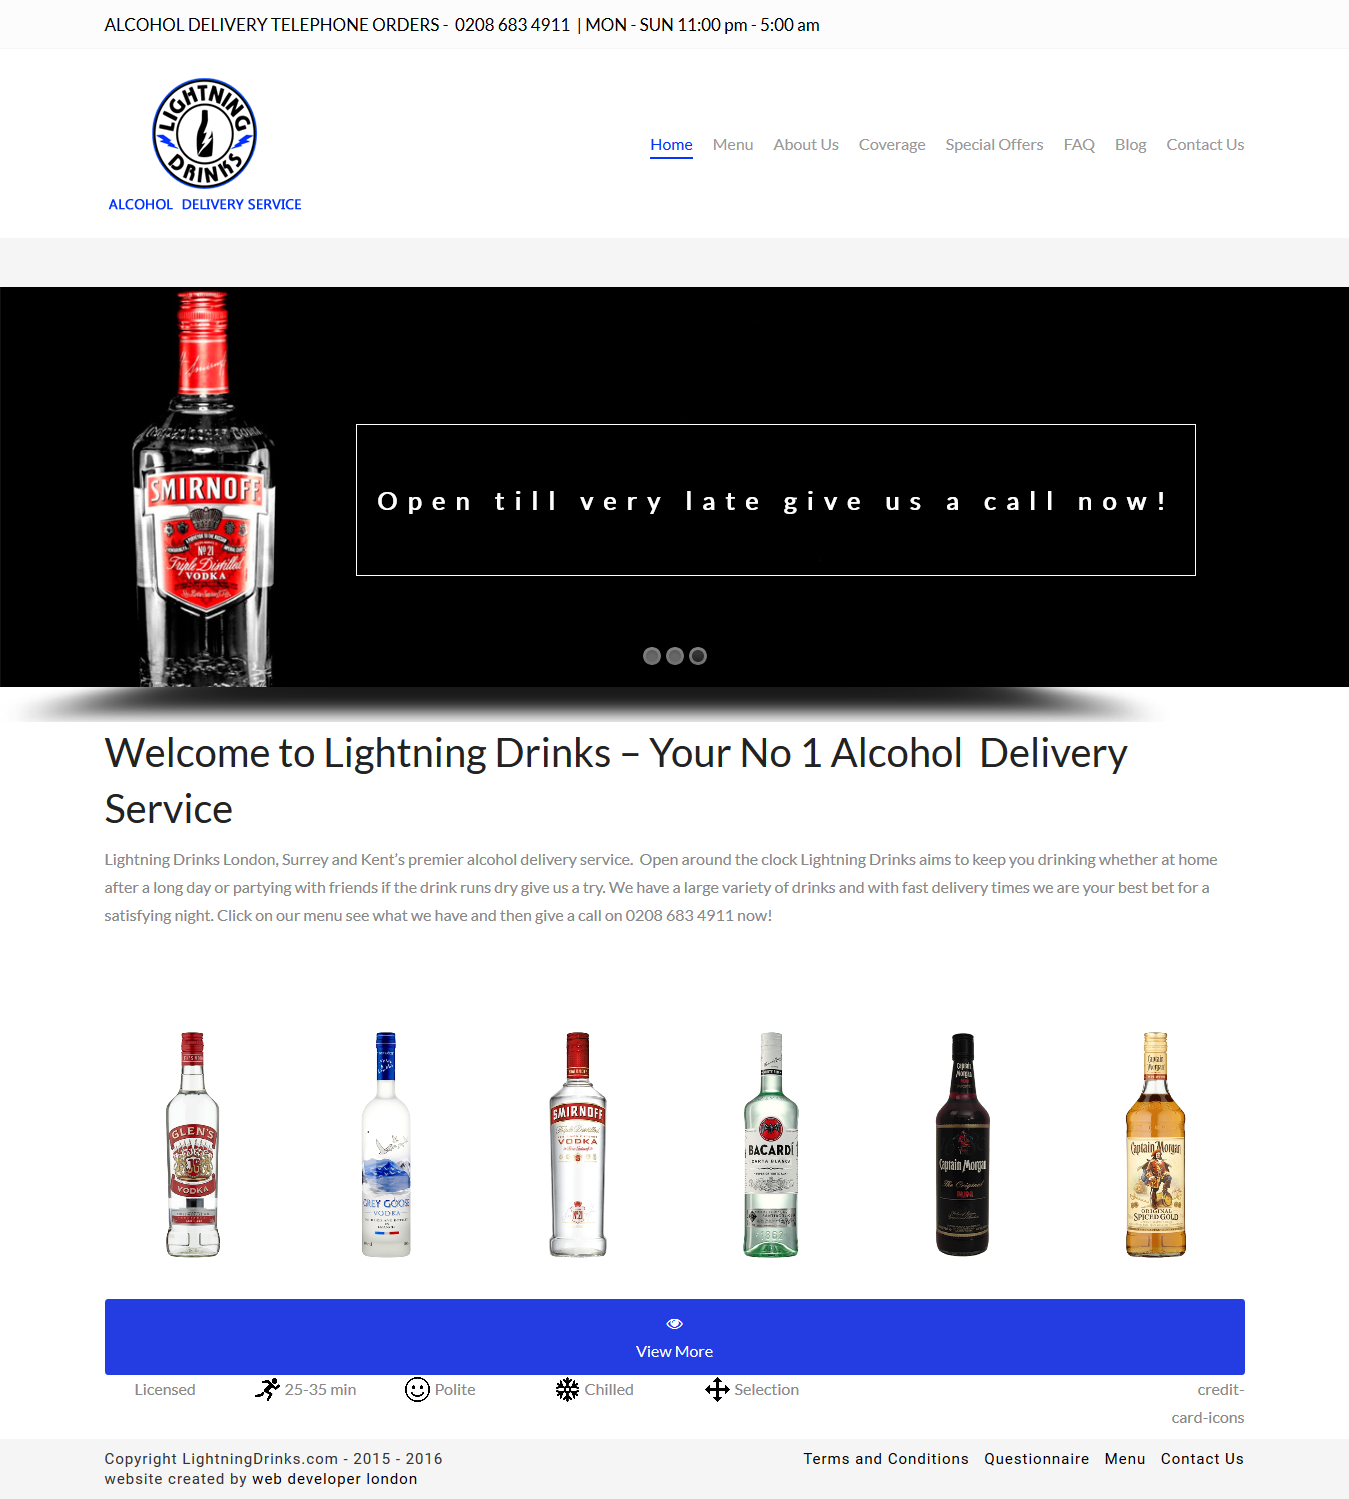 Alcohol delivery, London, croydon, 24 hour alcohol delivery,booze delivery, bromley, kingston